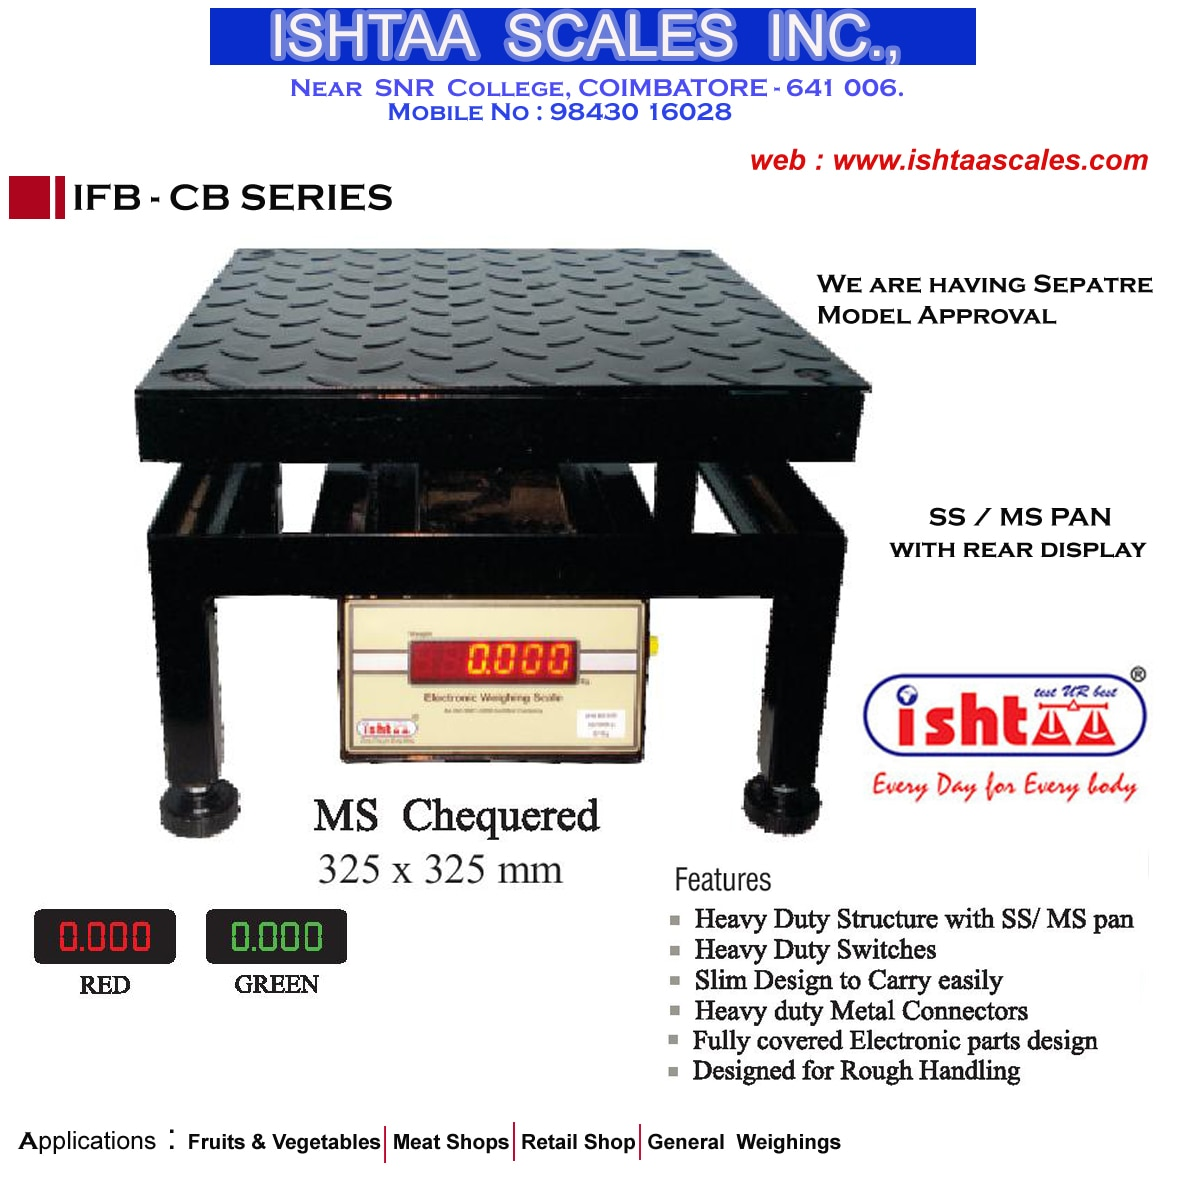 Ishtaa Scales Inc.,  is the leading Weighing Scale manufacturer in  Tamilnadu. We provide quality Weighing Scale made 4 u.  Ishtaa – IFB - CB Series We are having separate Model  approval for Chicken Scale Fast Moving & Best price Weighing Scale  Weighing Scales for Poultry Farms,  Chicken Weighing Scales Weighing Scales for Meat Shops Weighing Scales for Dairy Farms,  Weighing Scales for Commercial Purposes,  Weighing Scales for Retail Shop Weighing Scales for Agricultural,  Weighing Scales for Wholesalers  Weighing Scales for grocery,   To Know More - http://www.ishtaascales.com/field-scales-ifb-c.html For Orders,  Call: 09843016028 Mail: online@ishtaascales.com Web:www.ishtaascales.com